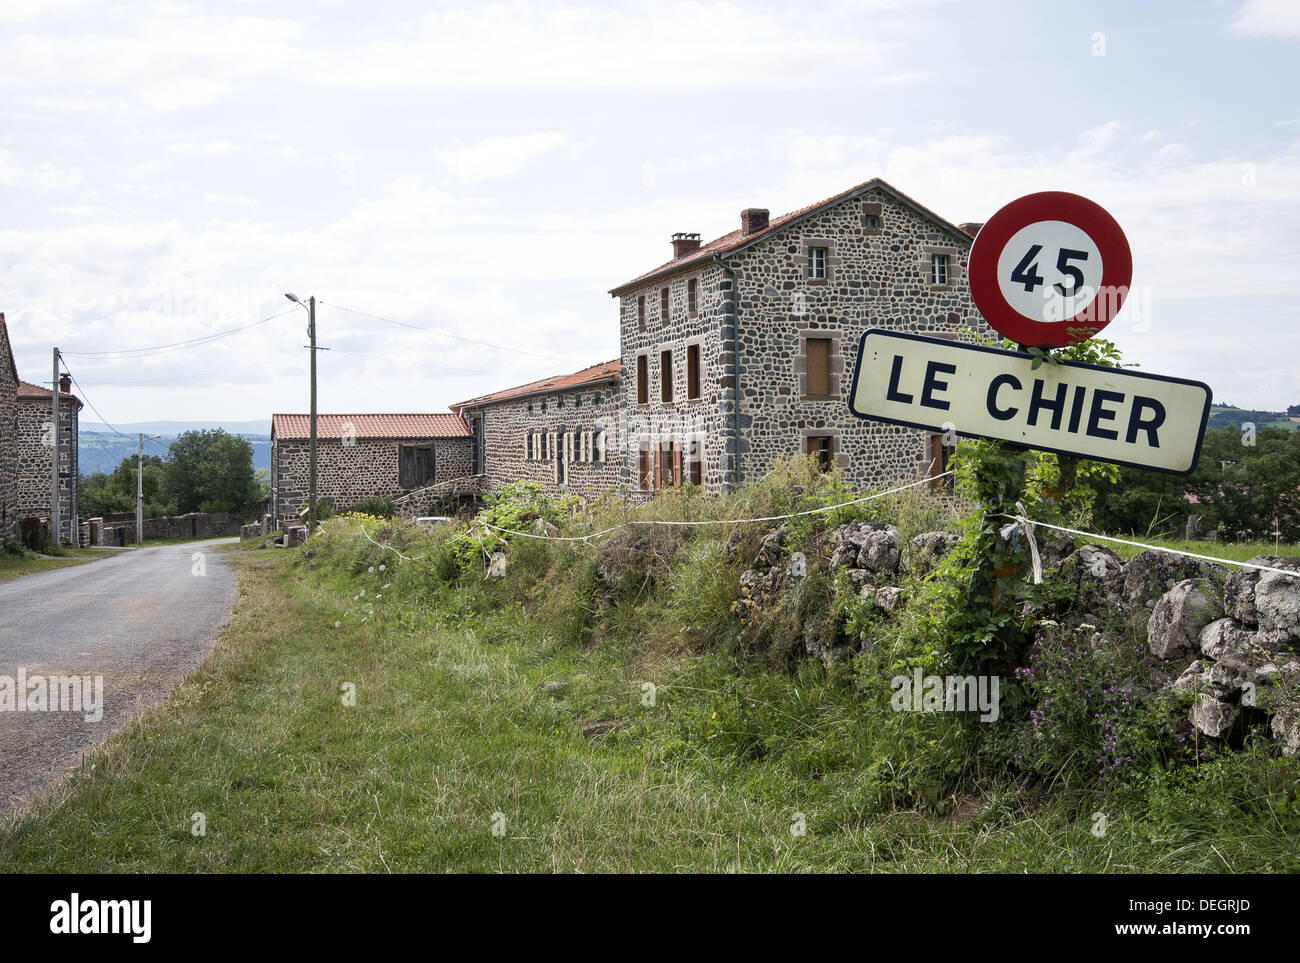 The picturesque village of Le Chier on the GR65 route, The way of St James, France - Stock Image